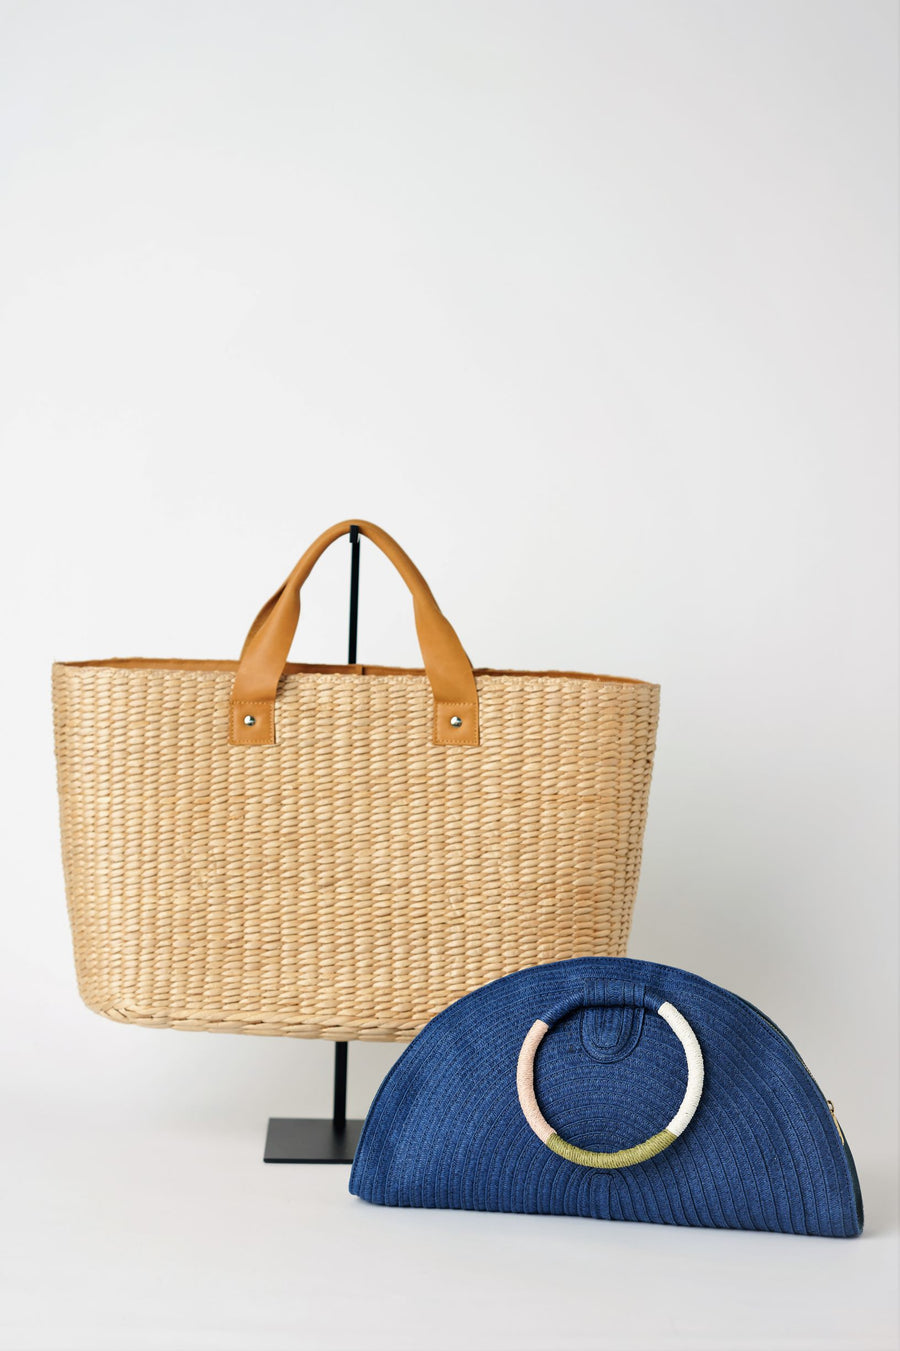 Collection of Anya & Niki Westmont straw bag with leather handles and Posey navy straw half moon clutch.